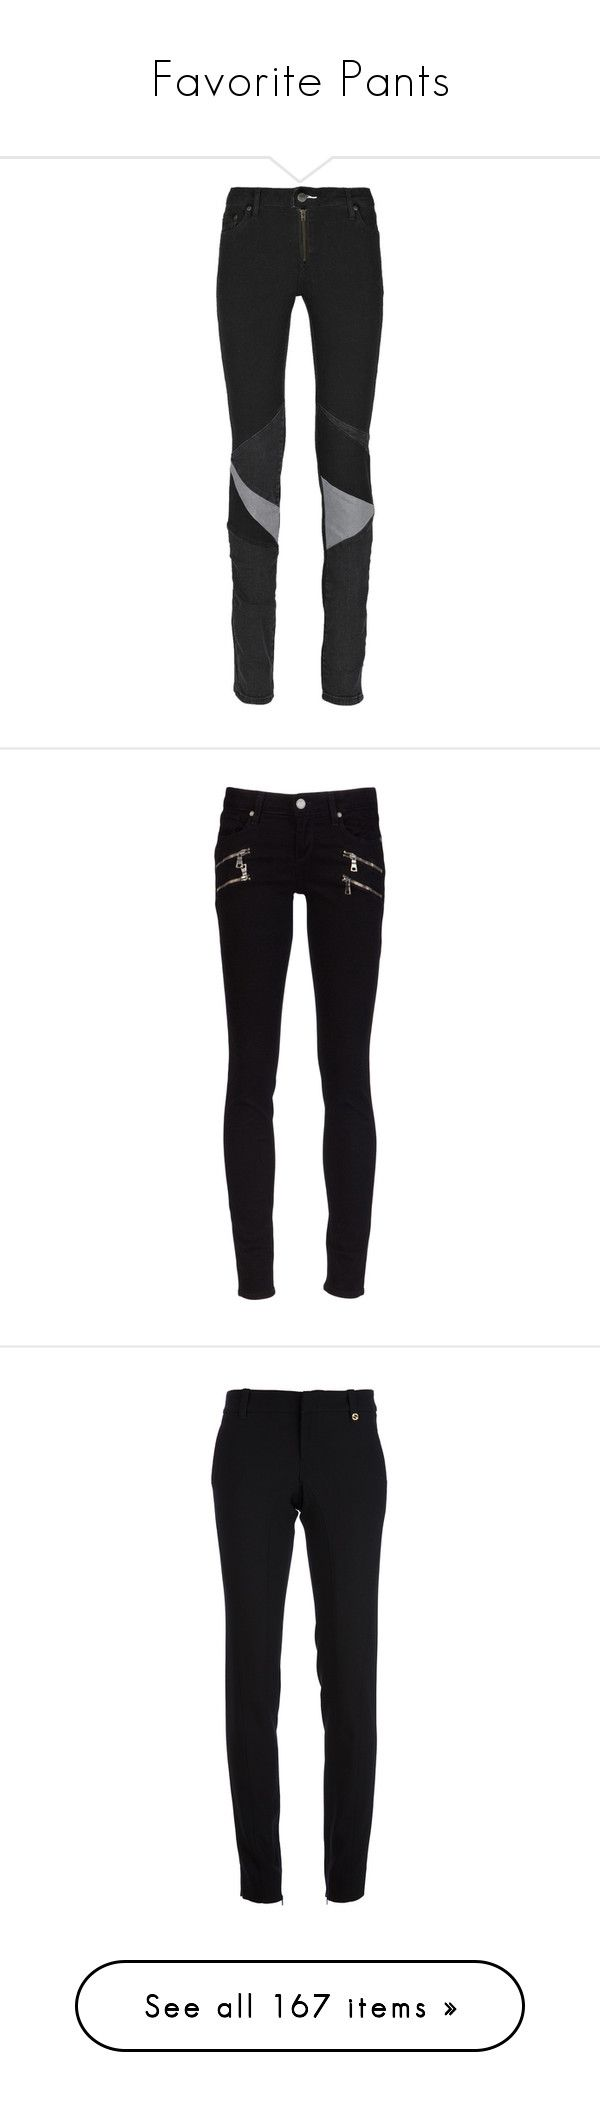 """Favorite Pants"" by gracebeckett ❤ liked on Polyvore featuring jeans, pants, bottoms, trousers, colorful skinny jeans, leather patch jeans, denim skinny jeans, leather jeans, zipper skinny jeans and pantalones"